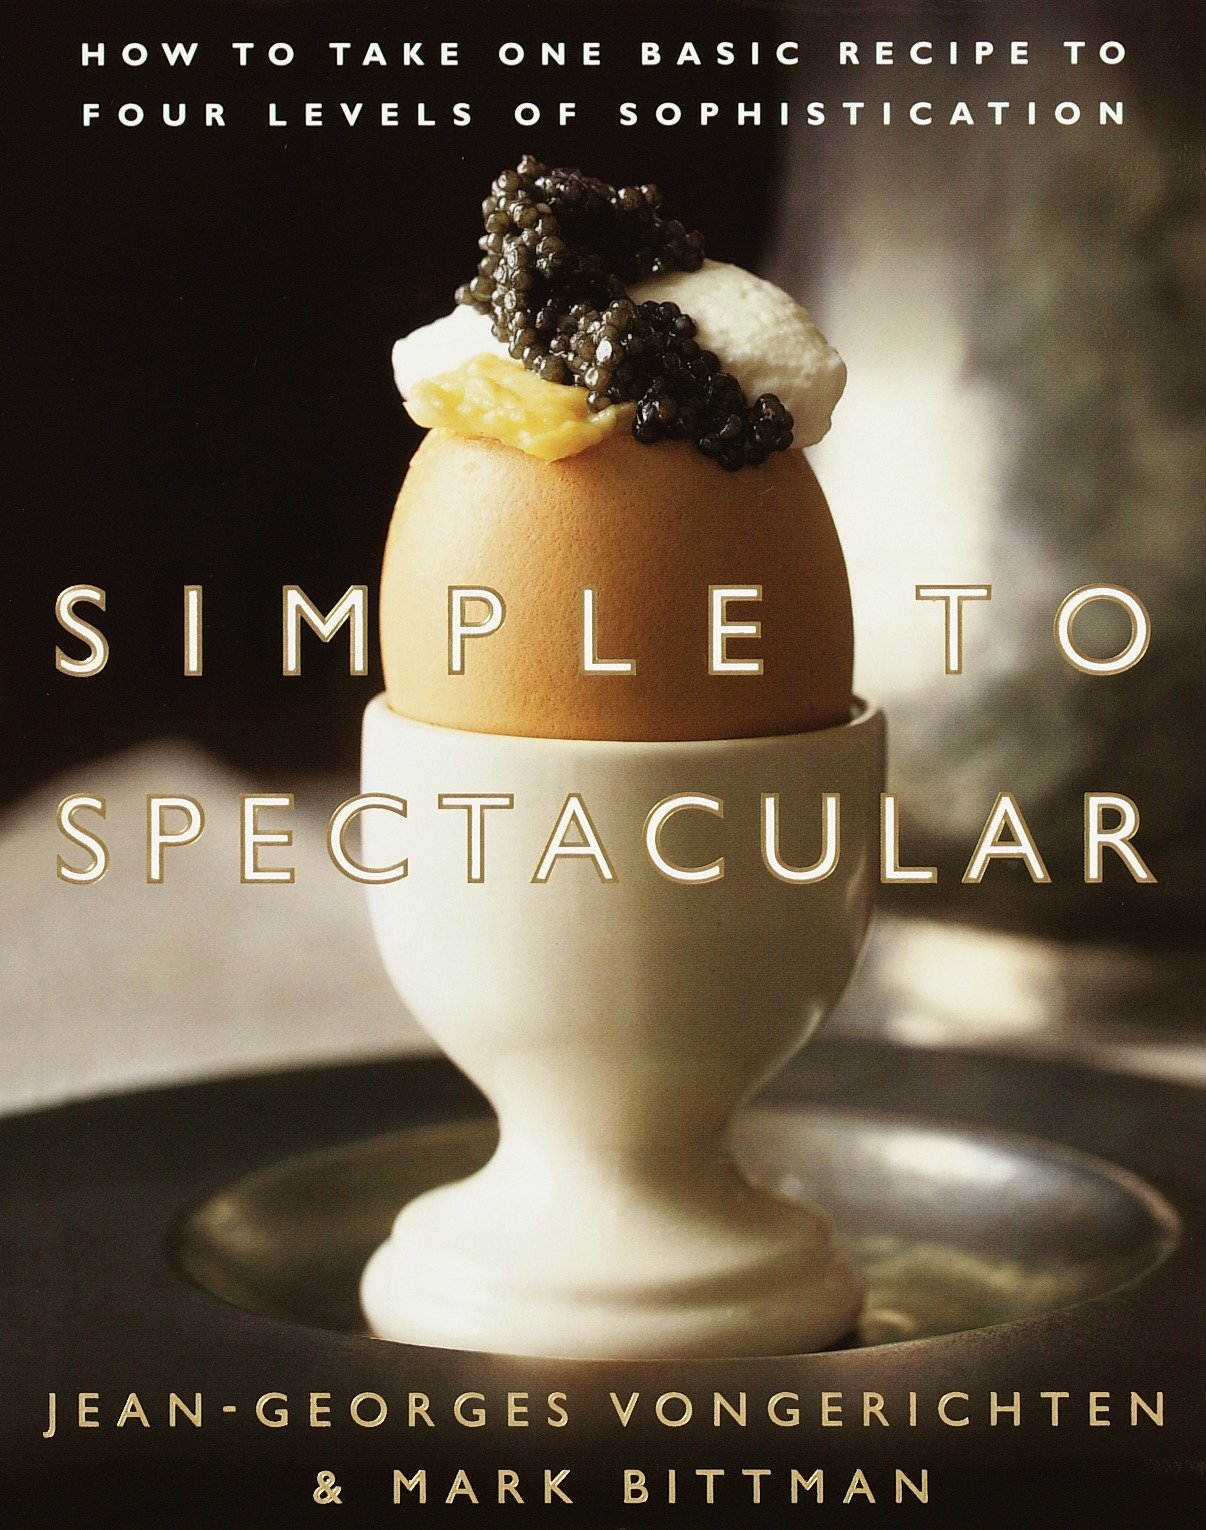 Simple to Spectacular: How to Take One Basic Recipe to Four Levels of Sophistication by Clarkson Potter